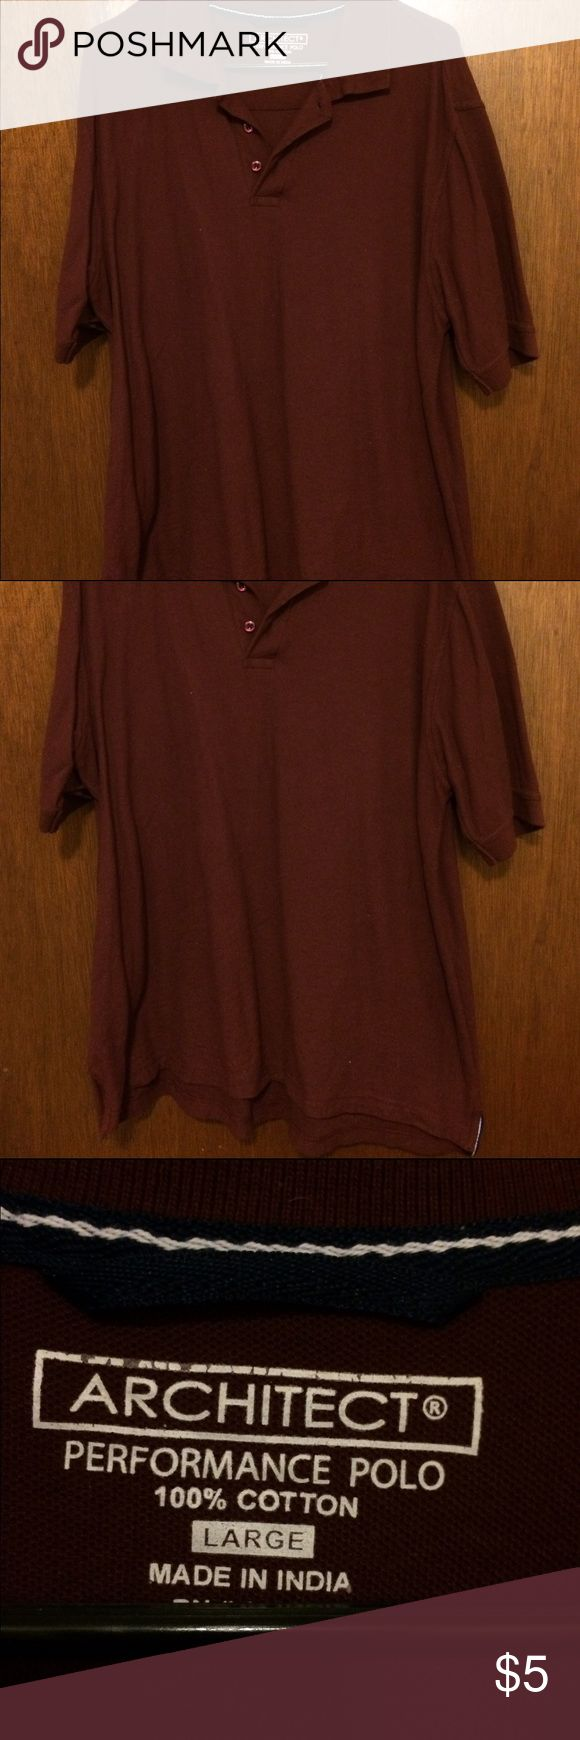 Men's Polo. Large. Must Bundle $3,$4,$5 ITEMS MUST BE BUNDLED😊Prices in this Closet are LOW AND FIRM. No bargaining needed😉 Makes it so much easier to just offer low low prices from the start 😊ASK ALL THE QUESTIONS YOU WANT BEFORE PURCHASING. 😘. TRADE VALUE IS $5.00 HIGHER THAN LISTED SALE PRICE!!😜 I NOW WORK 2 JOBS AND DO POSH AS MUCH AS I CAN. I BOX UP ALL ORDERS FOR THE WEEK ON SUNDAYS AND ALL BOXES ARE SHIPPED ON MONDAY MORNINGS. 💞💞 FOLLOW @dawnstreasures @isagenix @awesomestuff2…